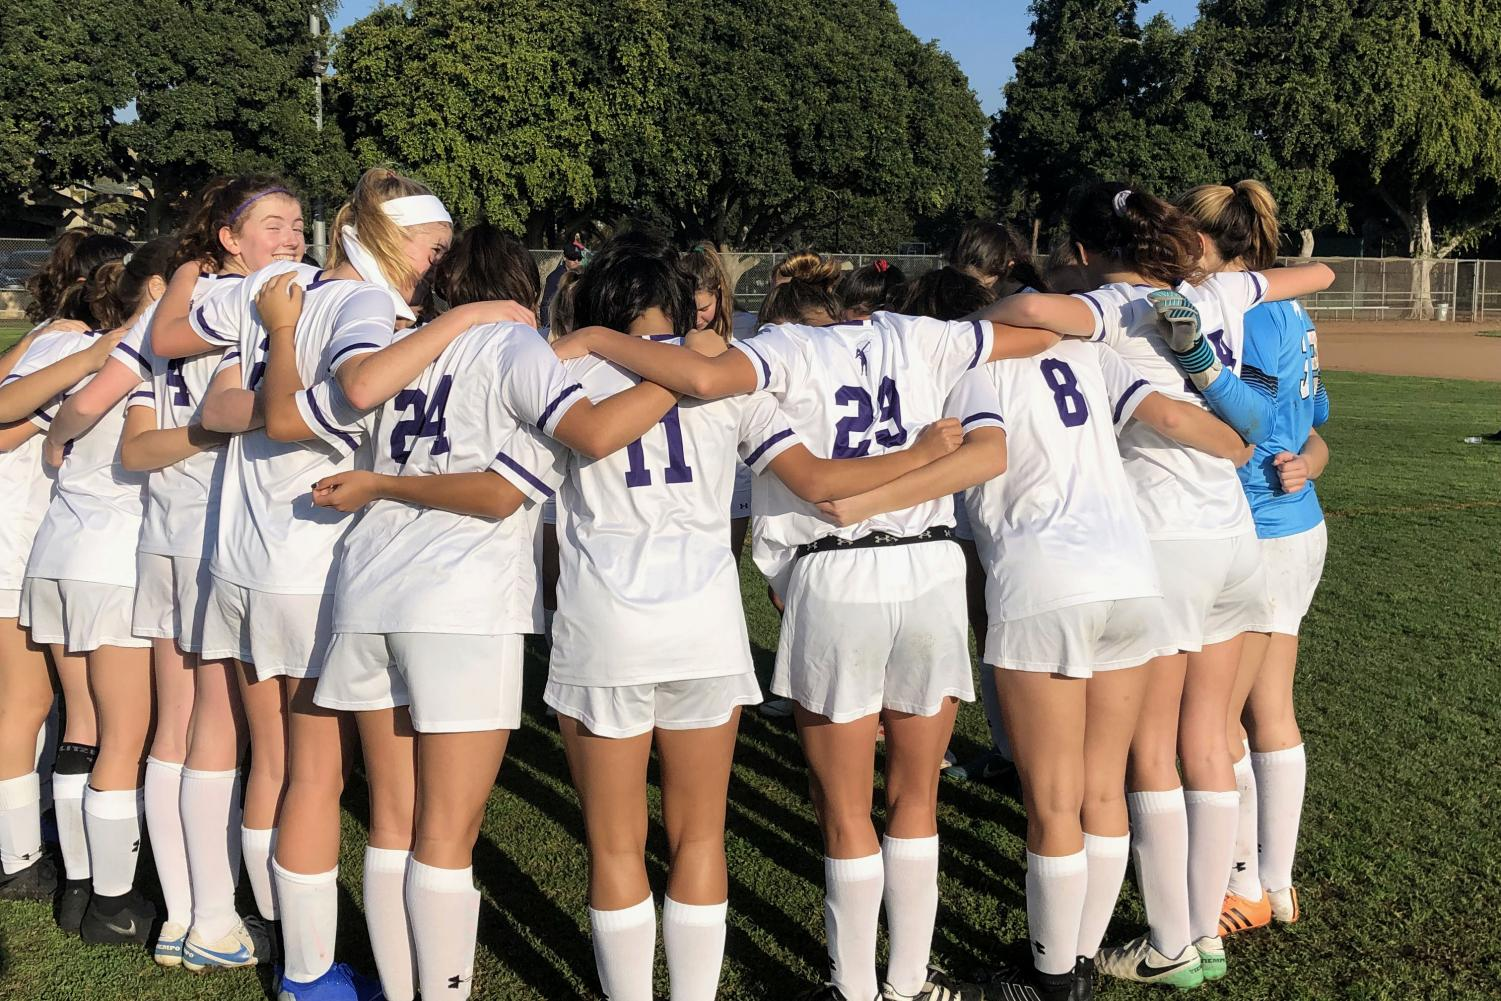 The Upper School varsity soccer team huddles up before today's game. The team won 3-0 against Pacifica Christian High School.